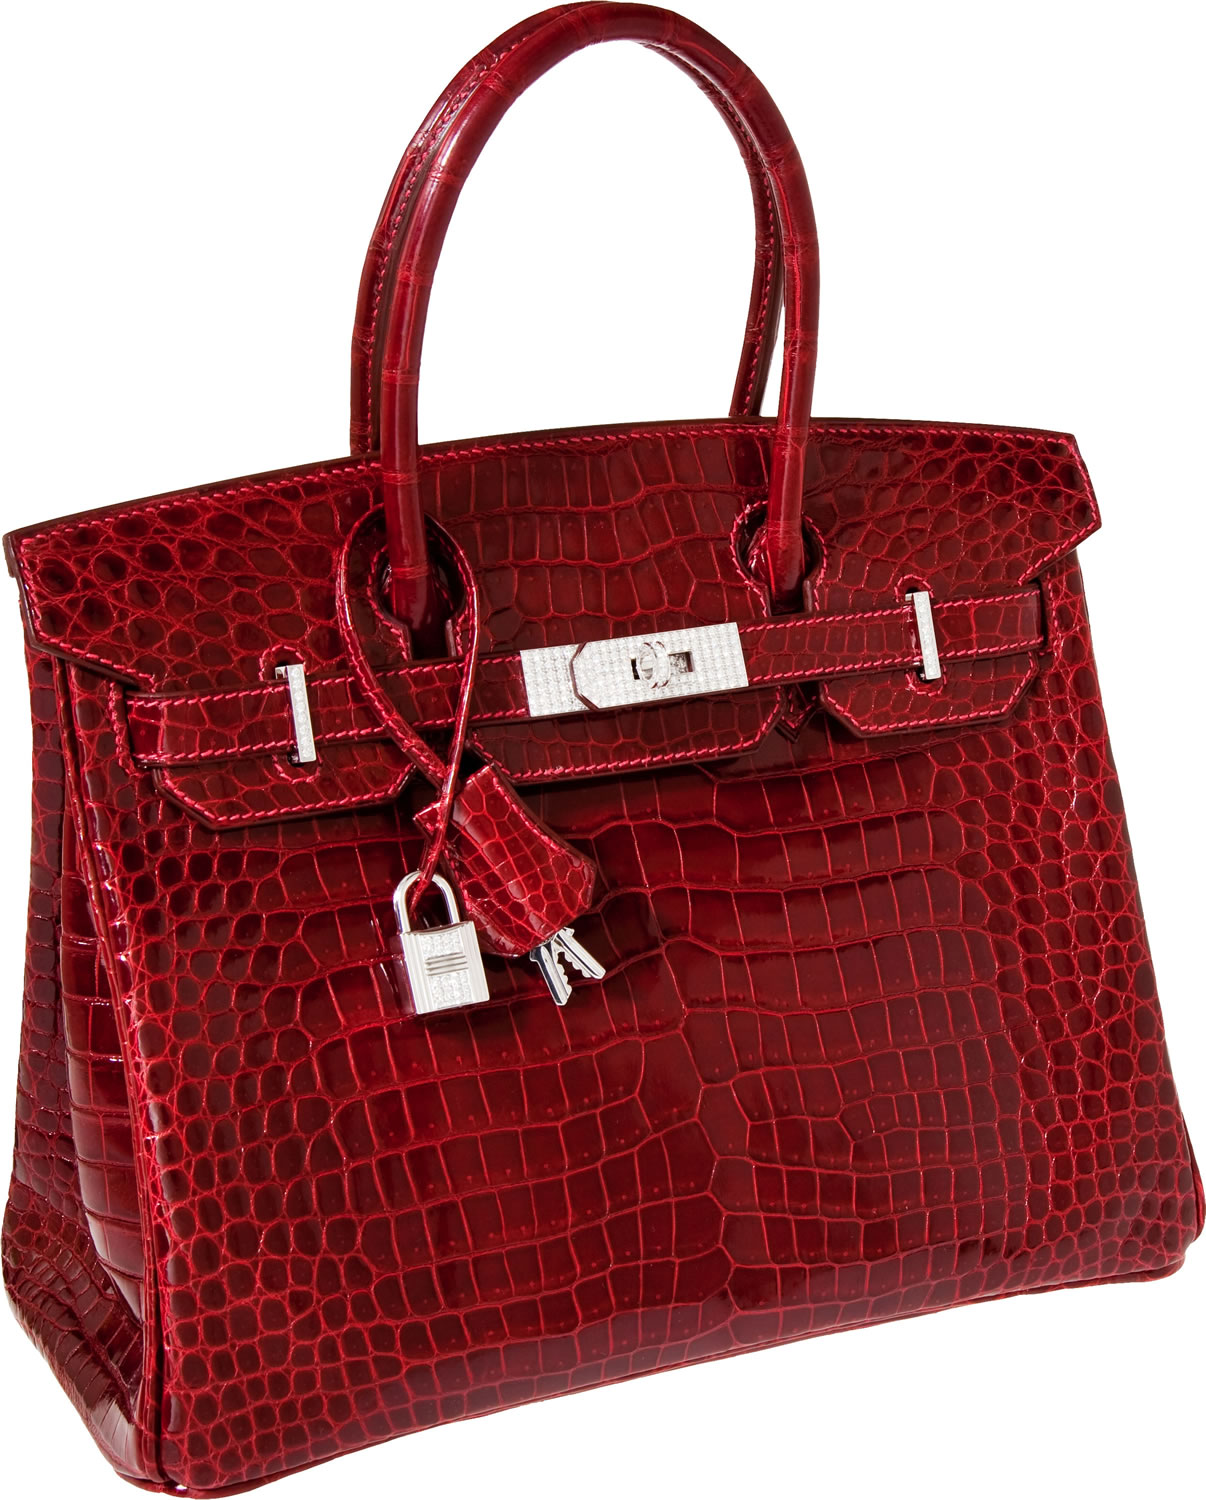 Most expensive purse: Hermes Birkin Bags sets world record